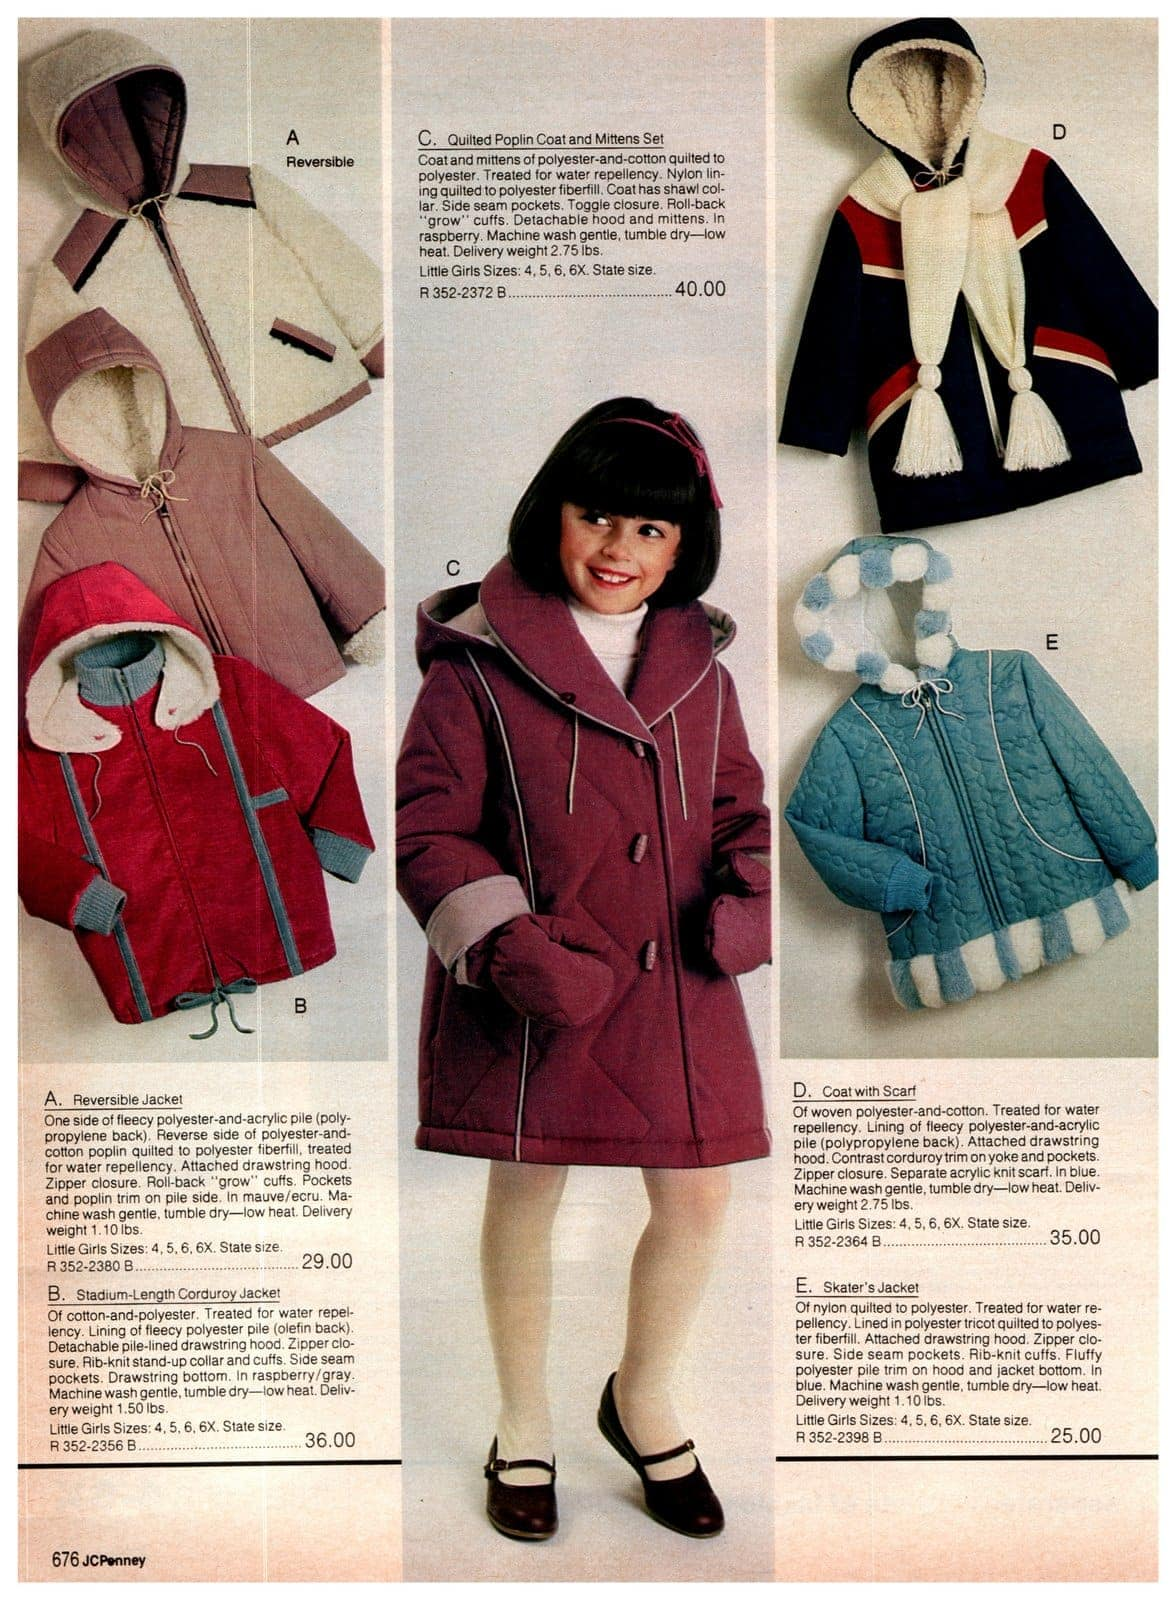 Cozy vintage '80s jackets for little girls